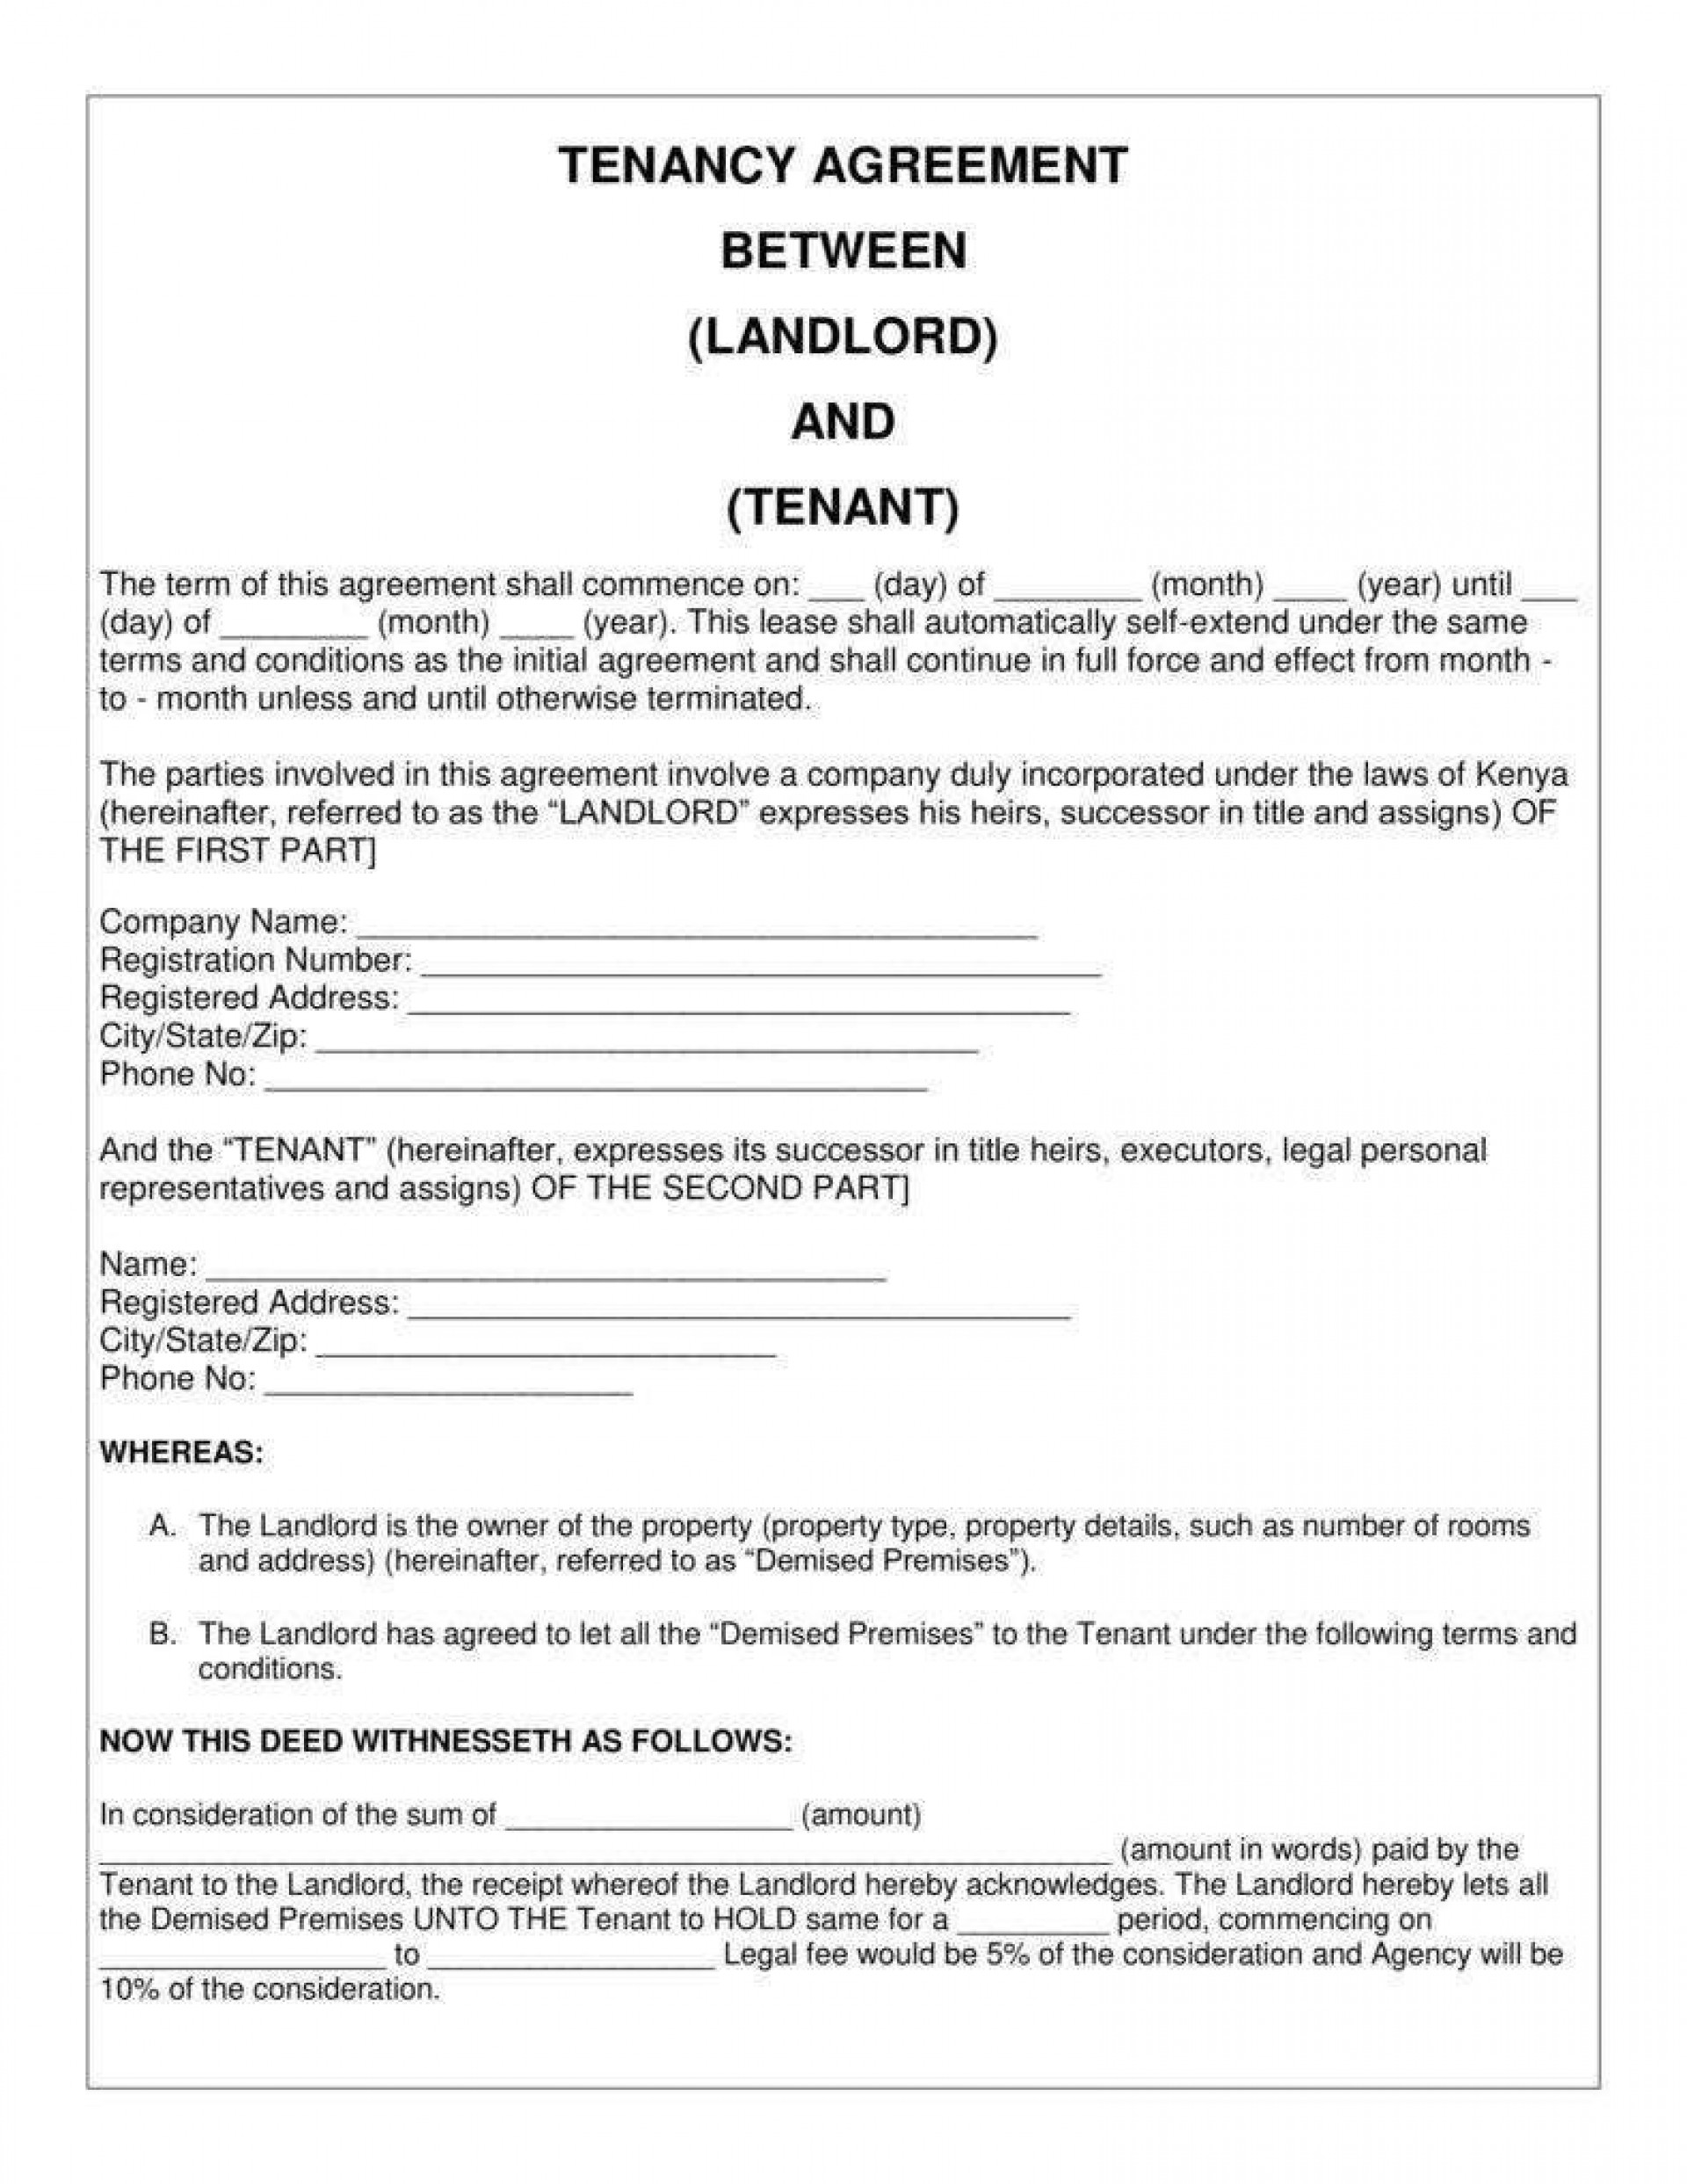 008 Surprising Tenancy Agreement Template Word Free High Def  Document Uk Pdf1920